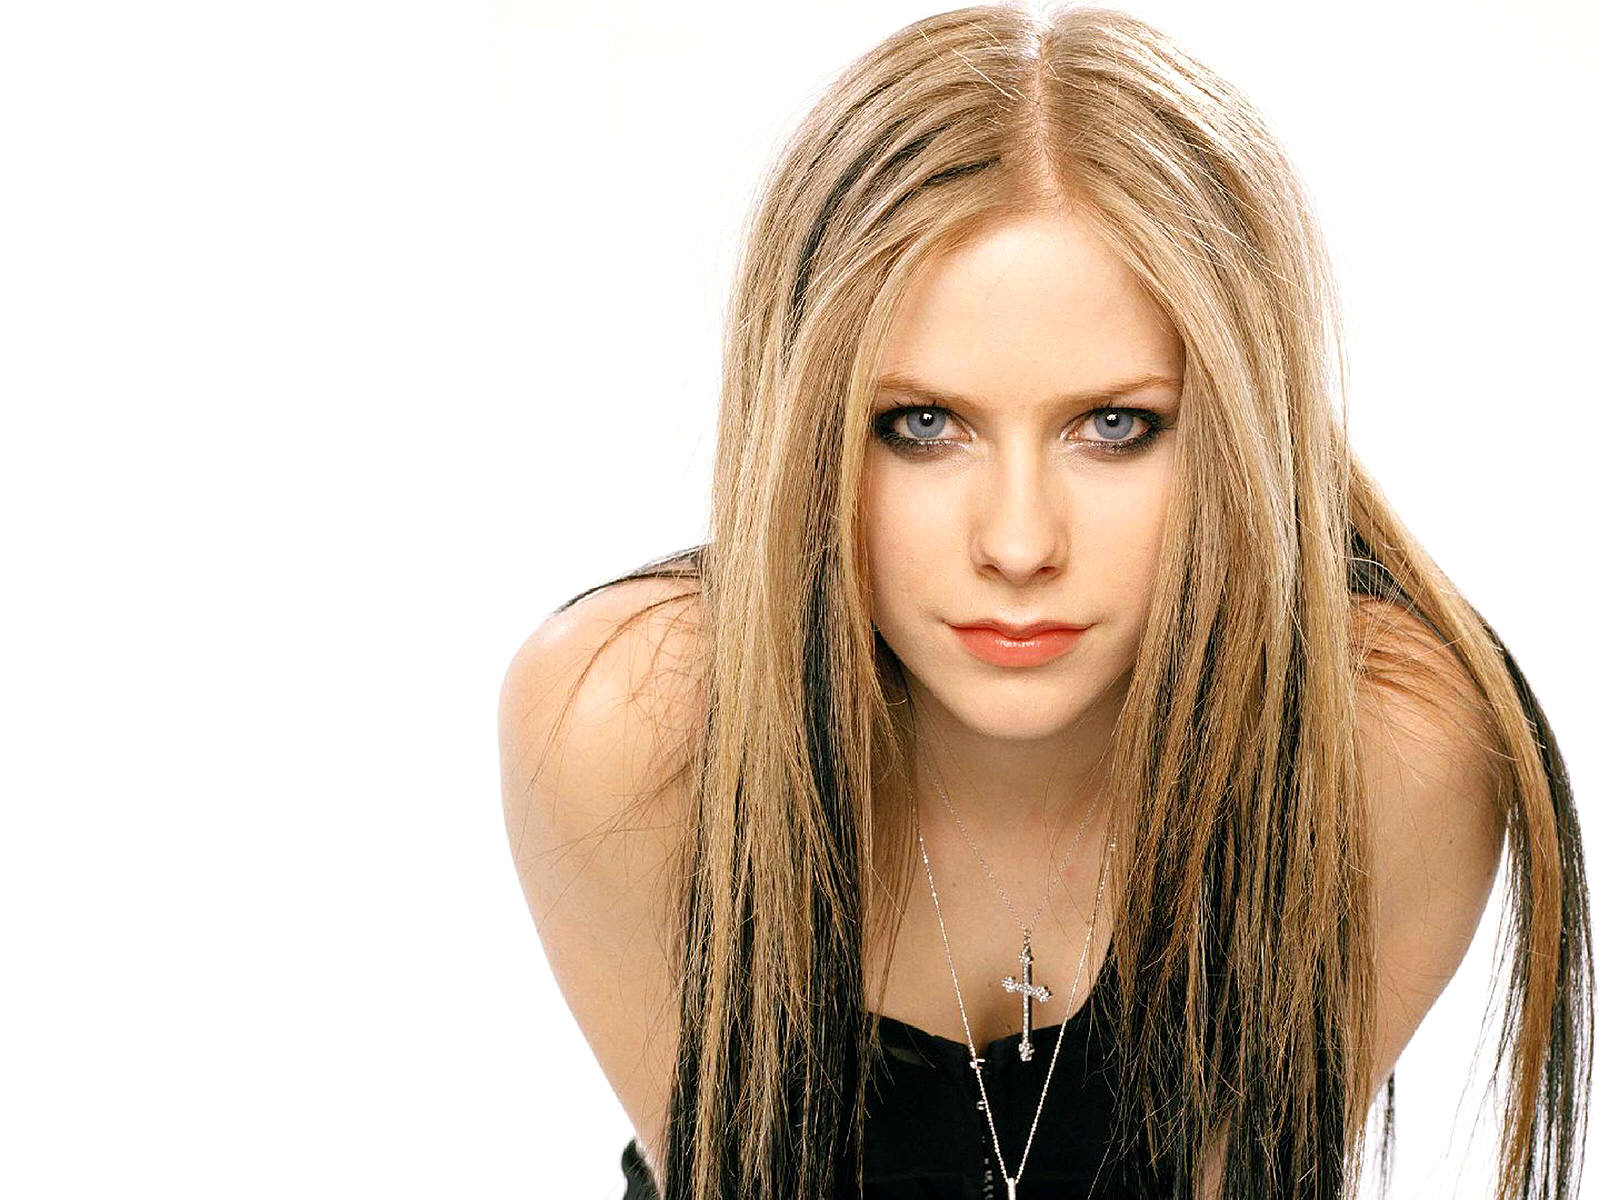 Avril Lavigne Hot Pictures, Photo Gallery & Wallpapers Lavigne